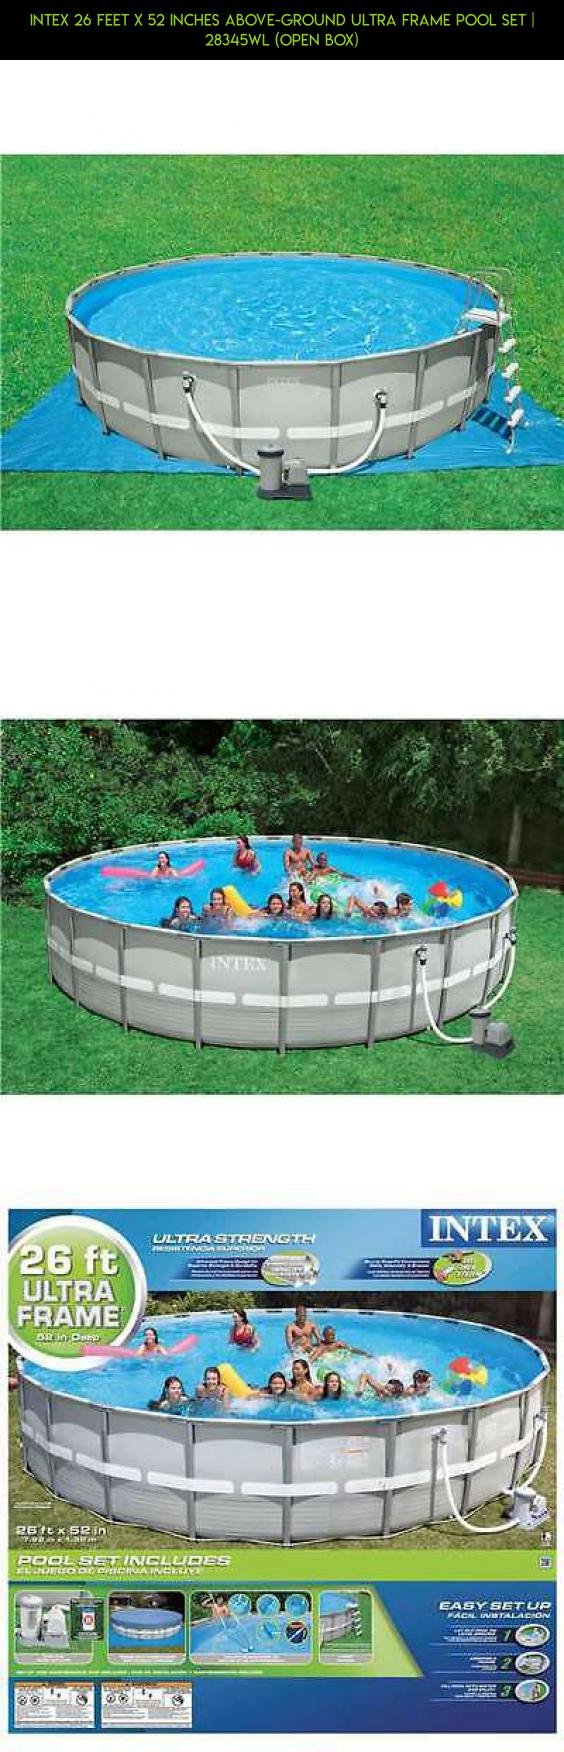 Intex 26 Feet x 52 Inches Above-Ground Ultra Frame Pool Set ...